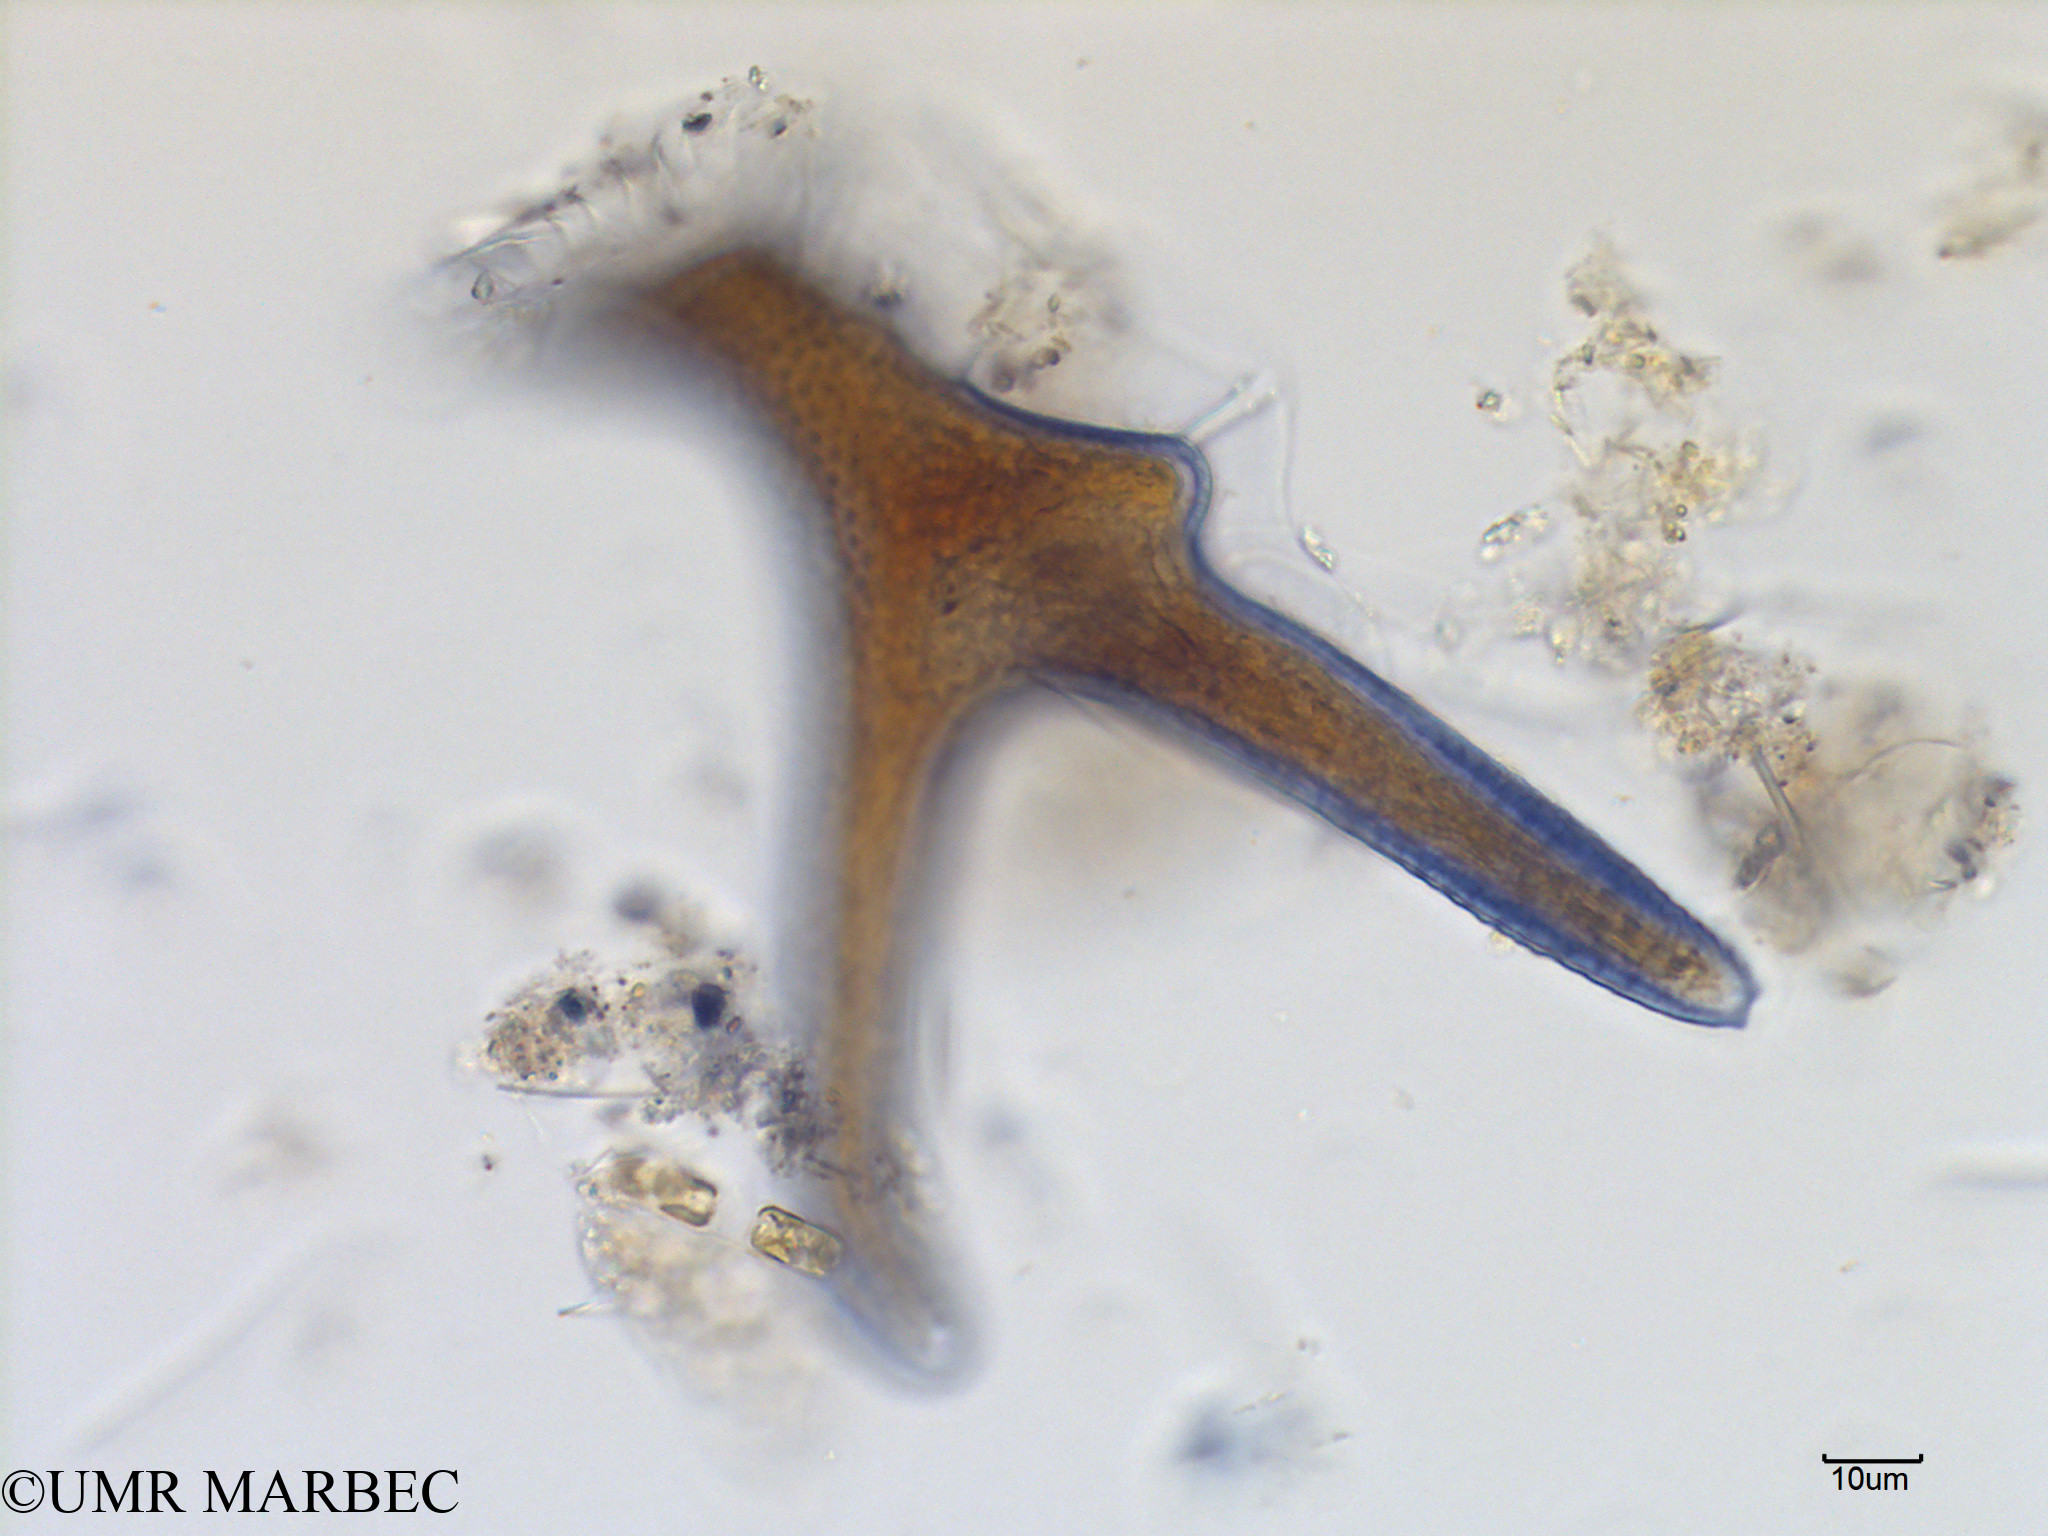 phyto/Scattered_Islands/mayotte_lagoon/SIREME May 2016/Dinophysis miles (MAY8_dino a identifier-15).tif(copy).jpg